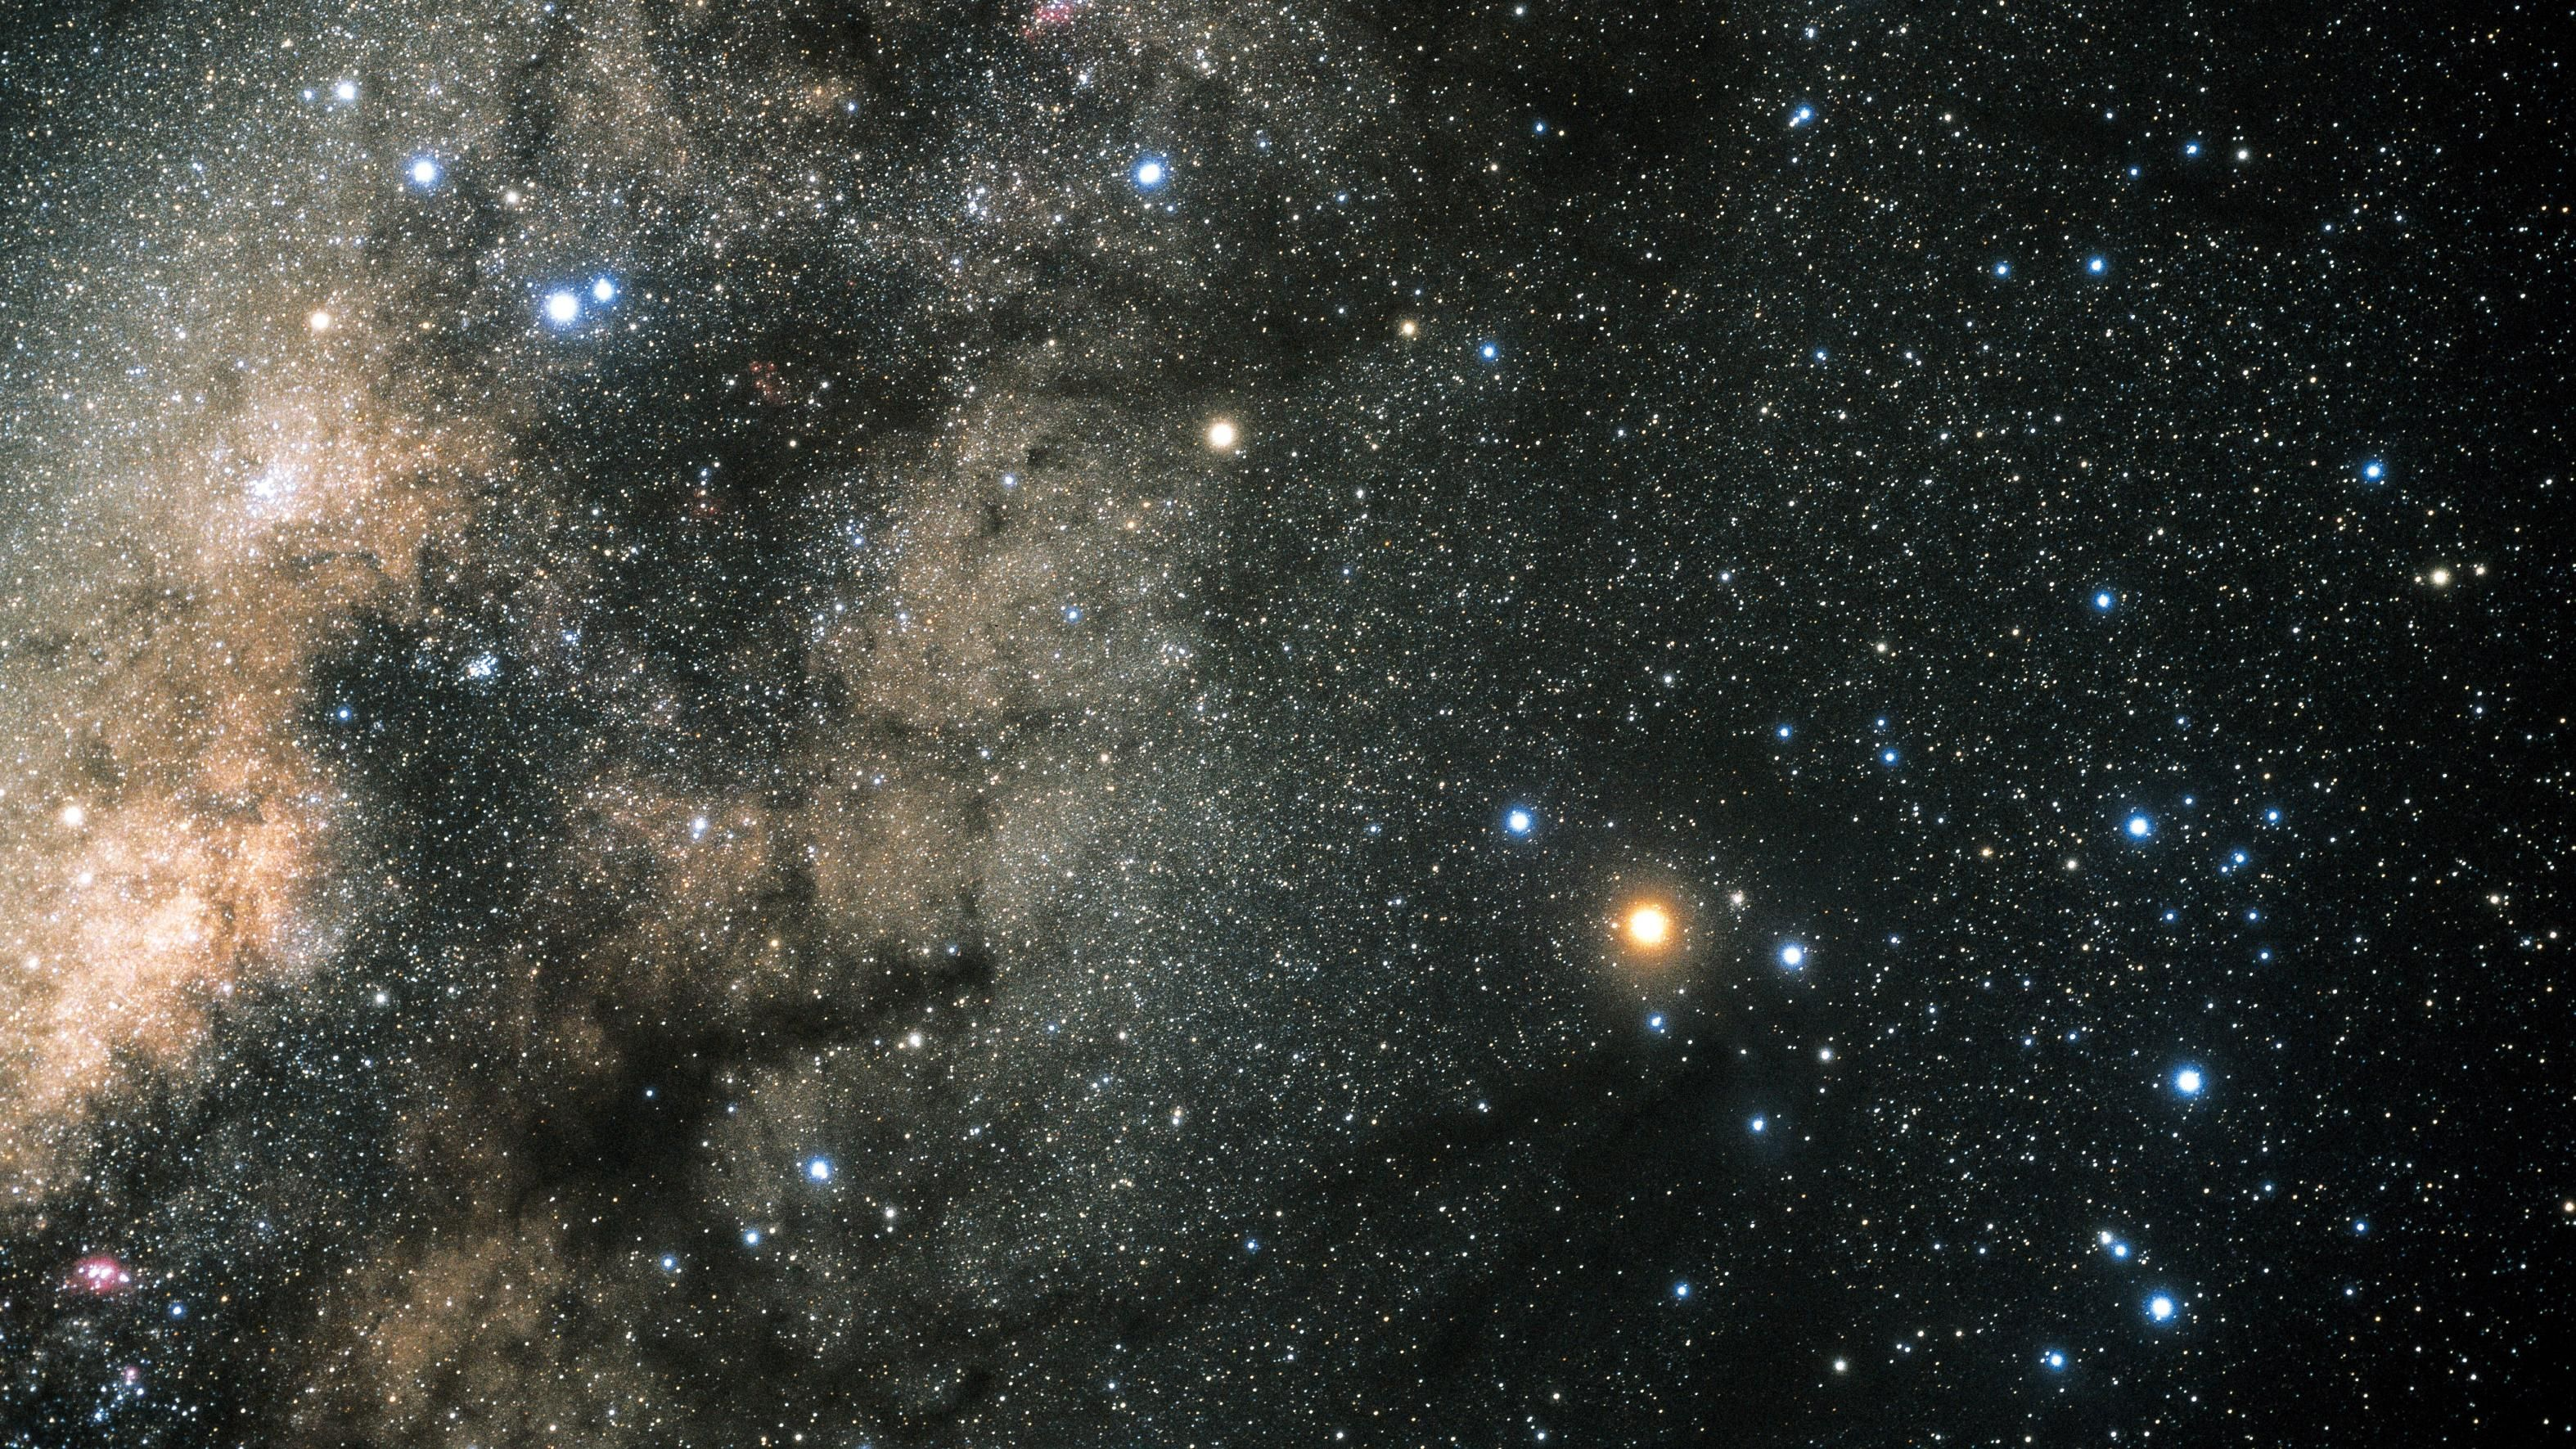 The Amazing Universe Wallpaper images hd Galaxy wallpaper 3148x1771